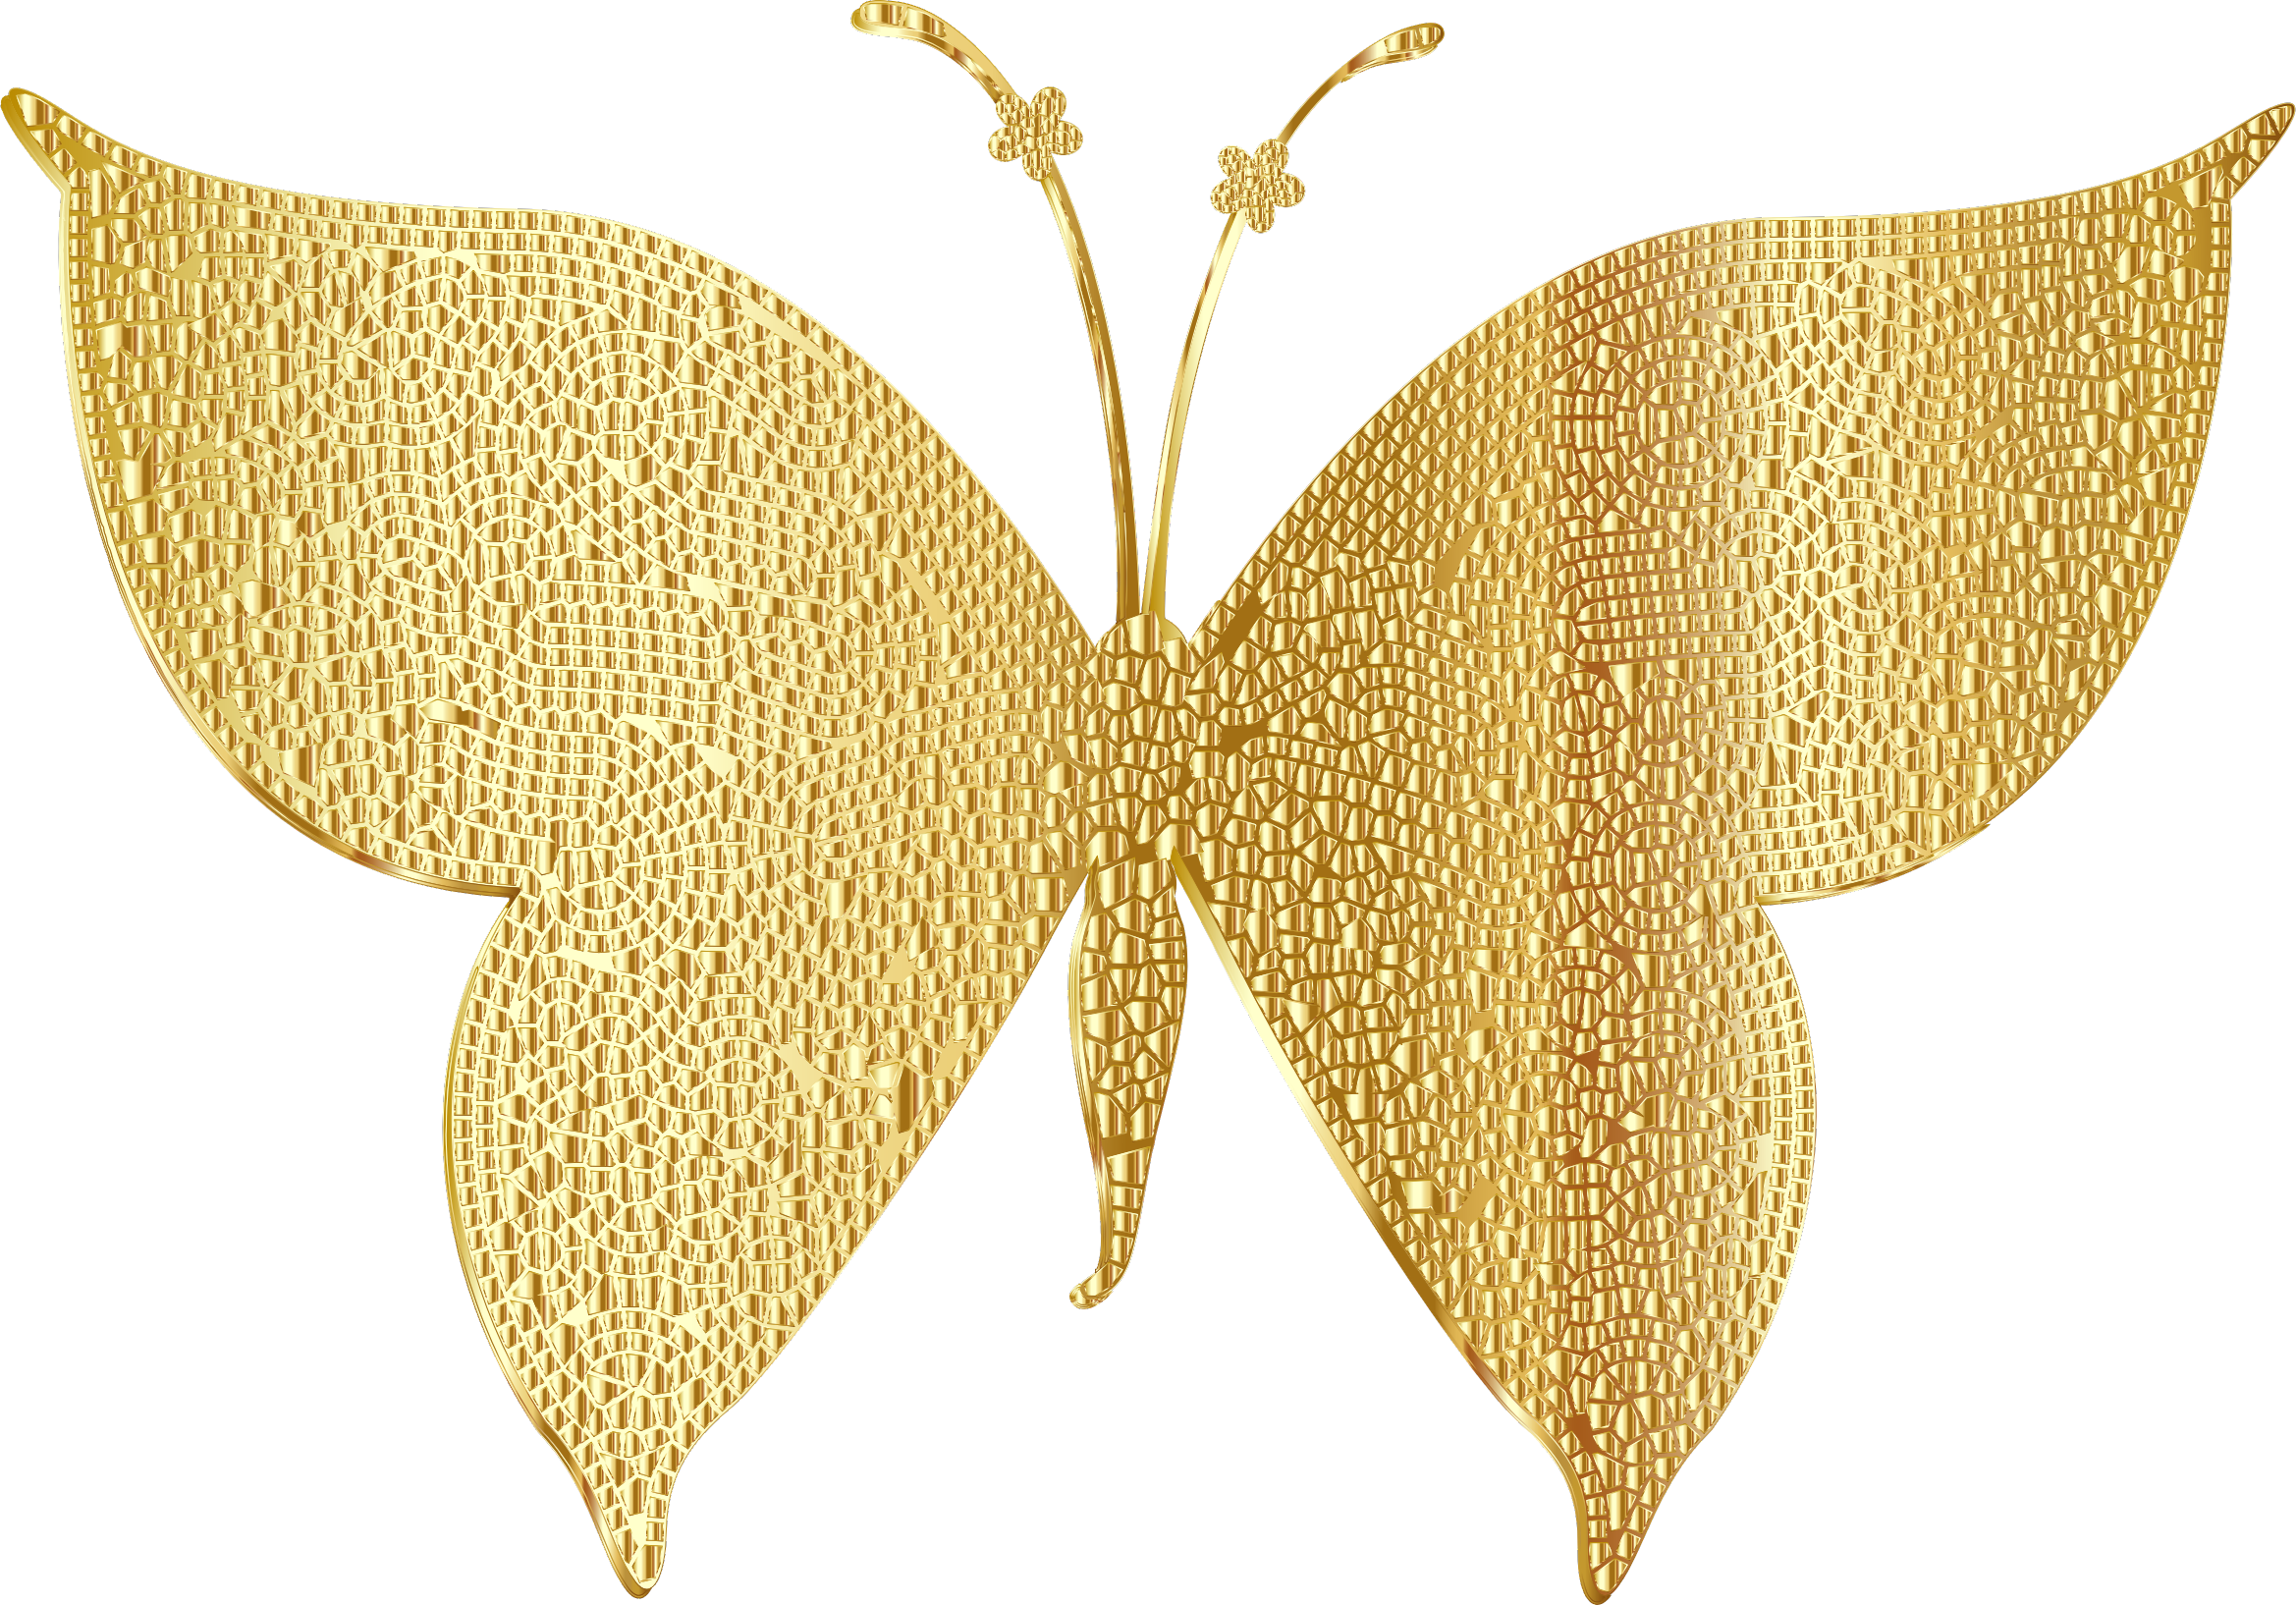 Gold Tiled Butterfly by GDJ